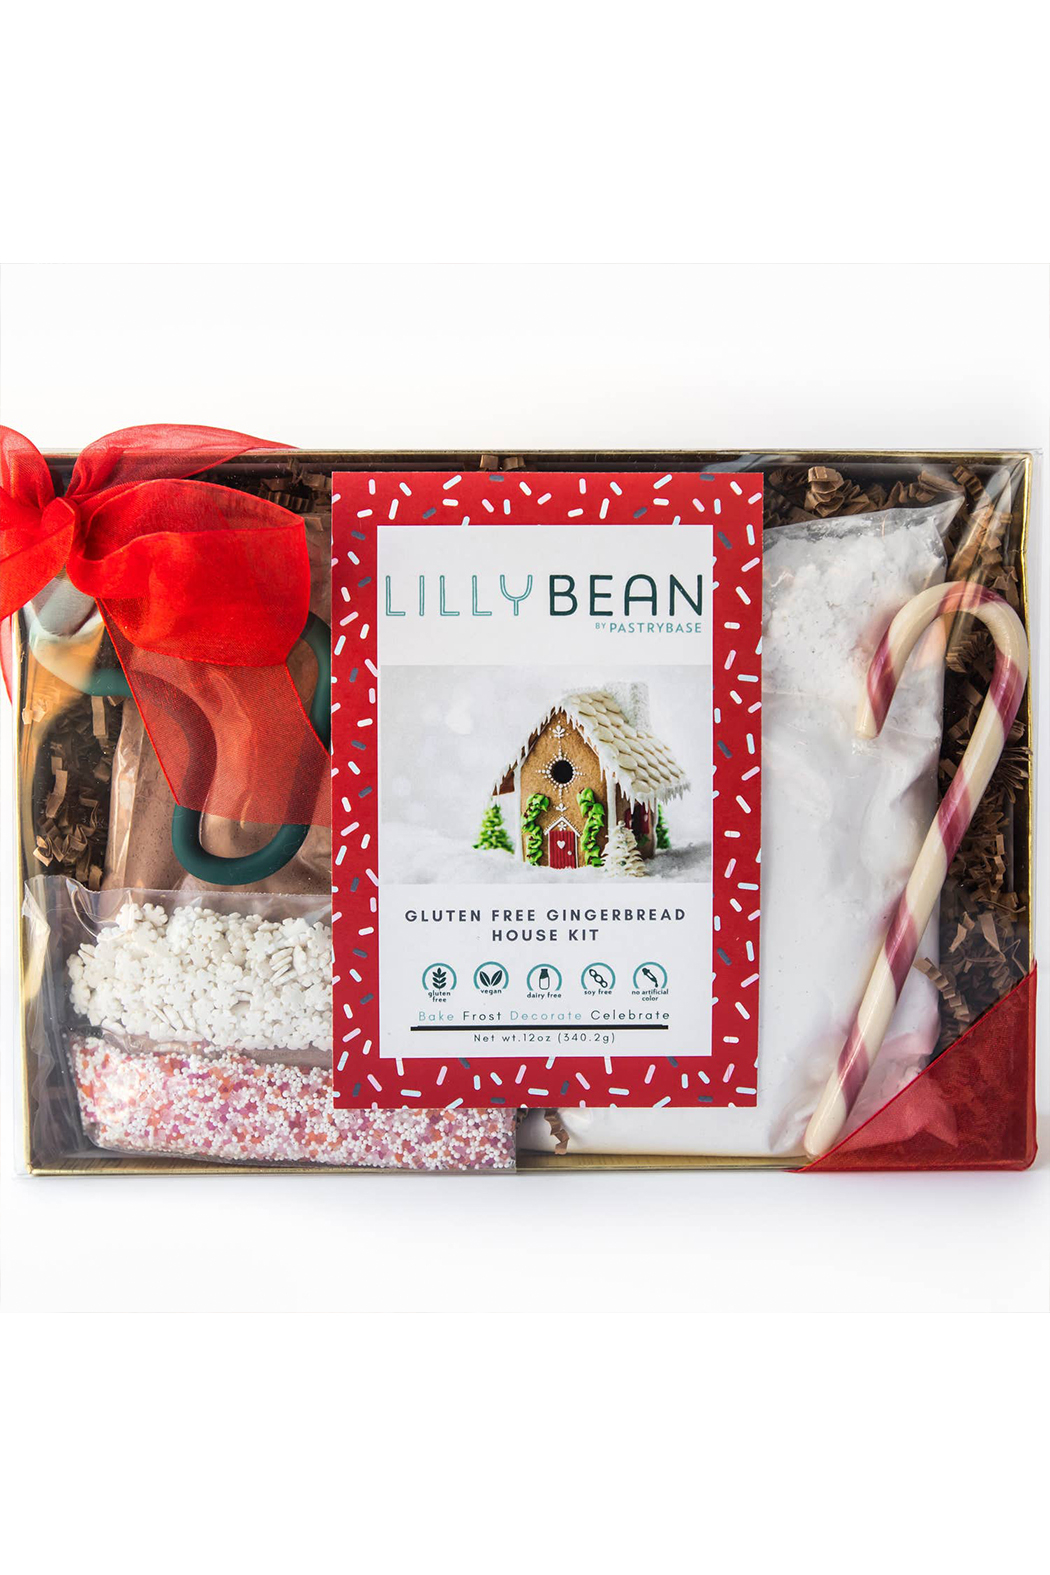 Lillybean by Pastry Base Gluten-Free Gingerbread House Baking Kit (Vegan!) - Main Image